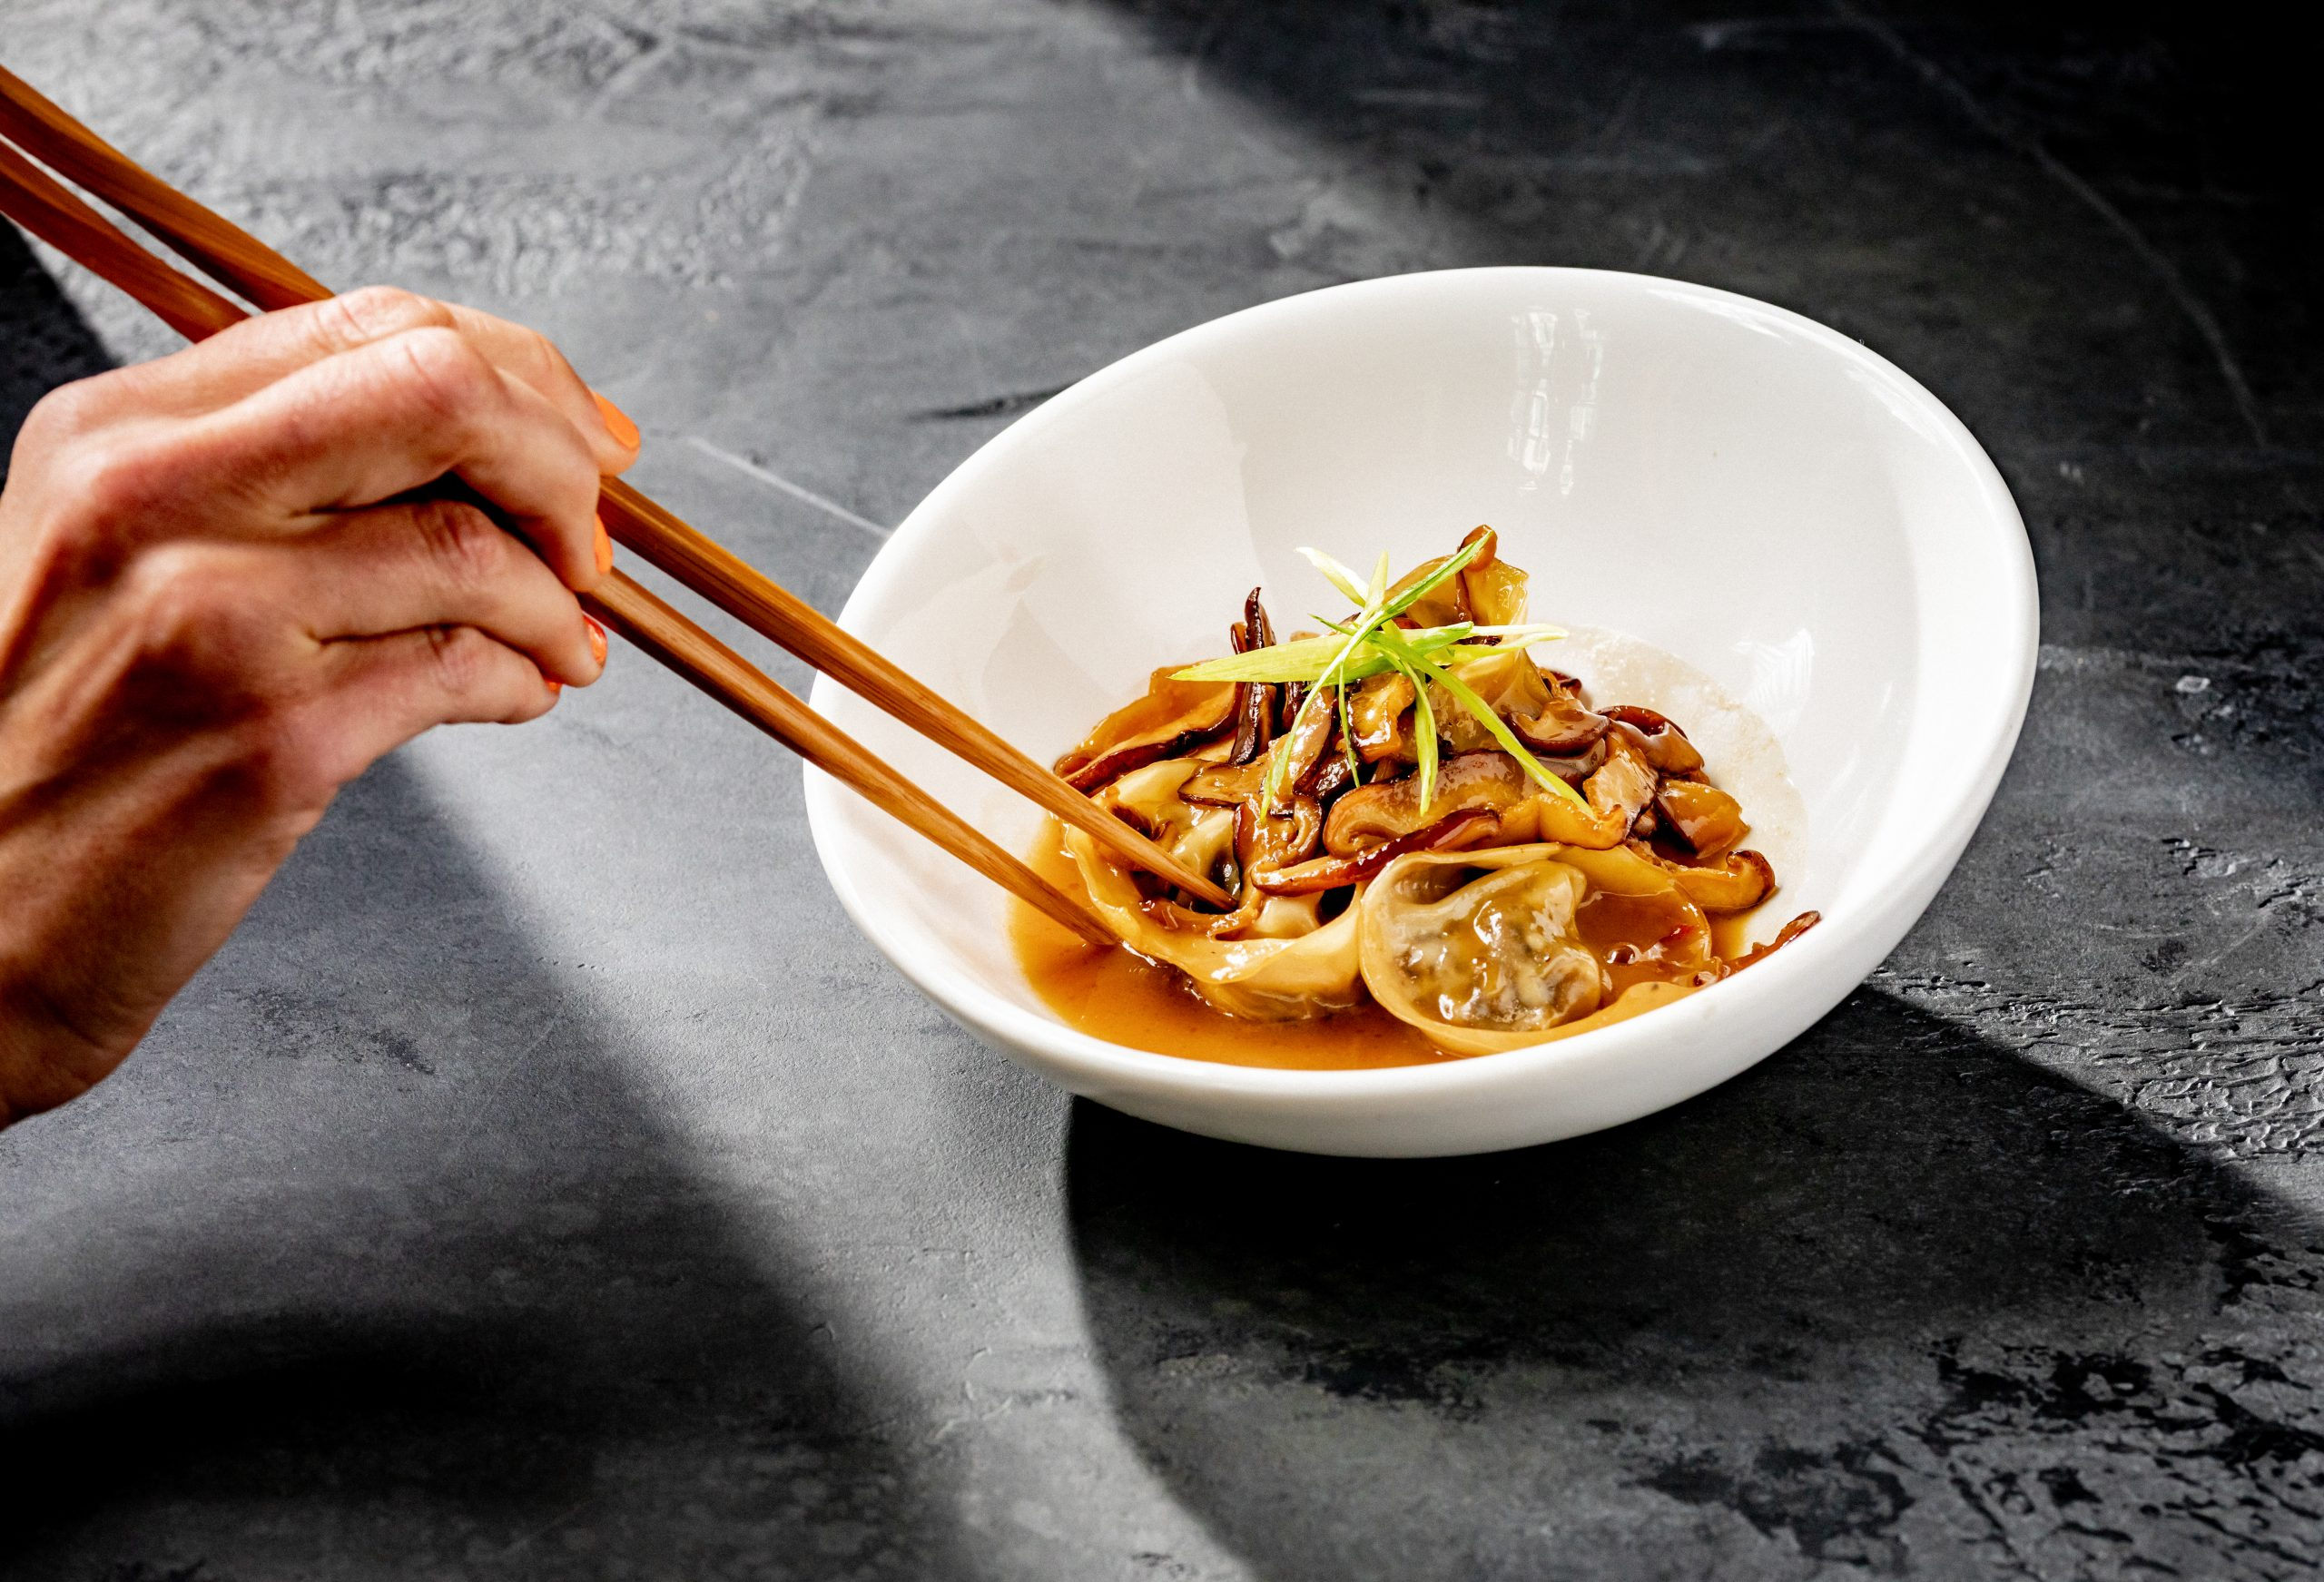 dumplings and garnish in a bowl with someone using chopsticks to hold a dumpling